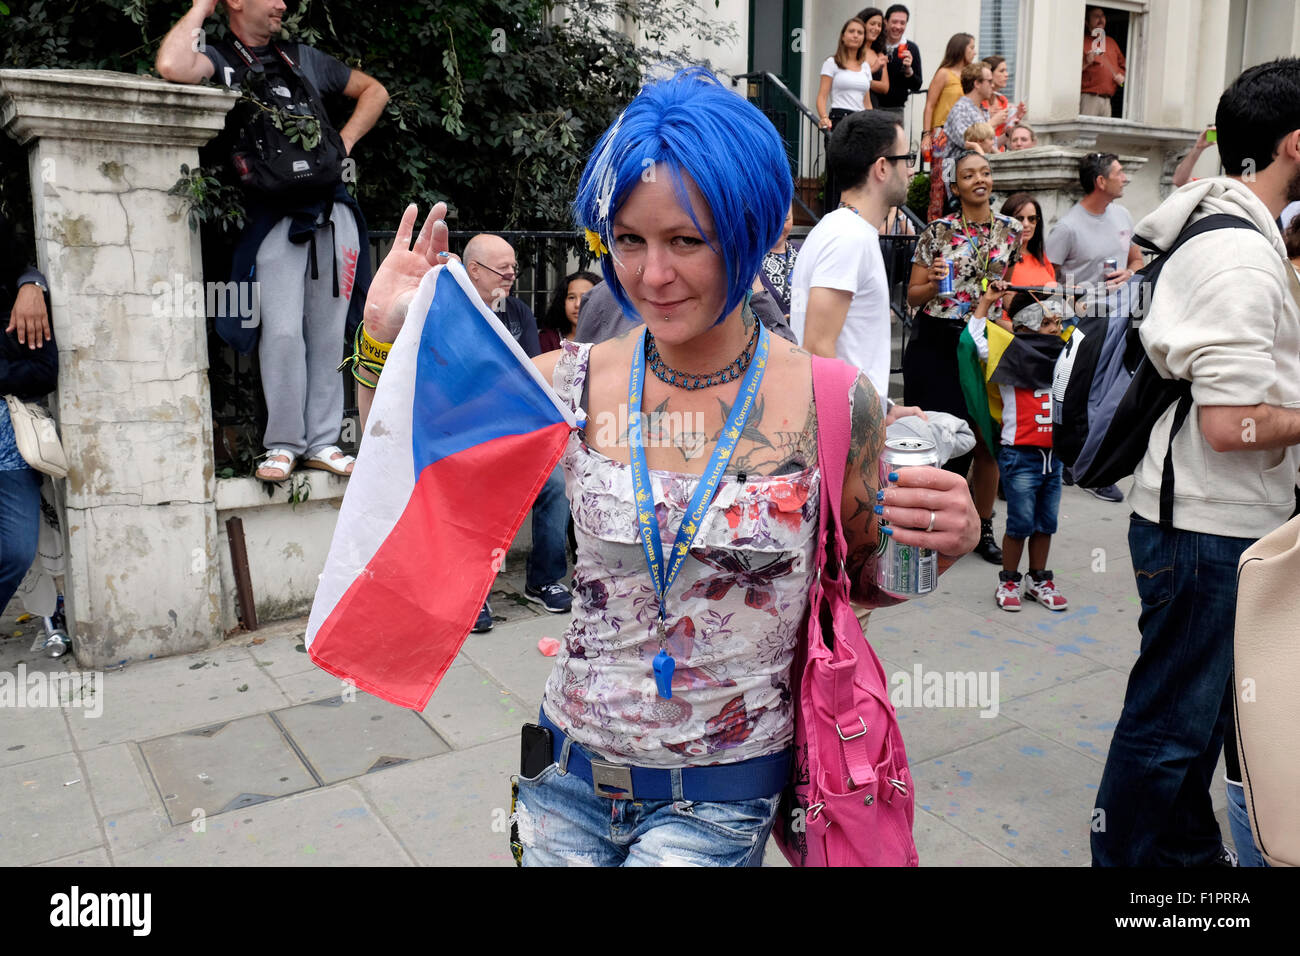 A woman with blue hair holds a Russian flag at Notting Hill carnival - Stock Image